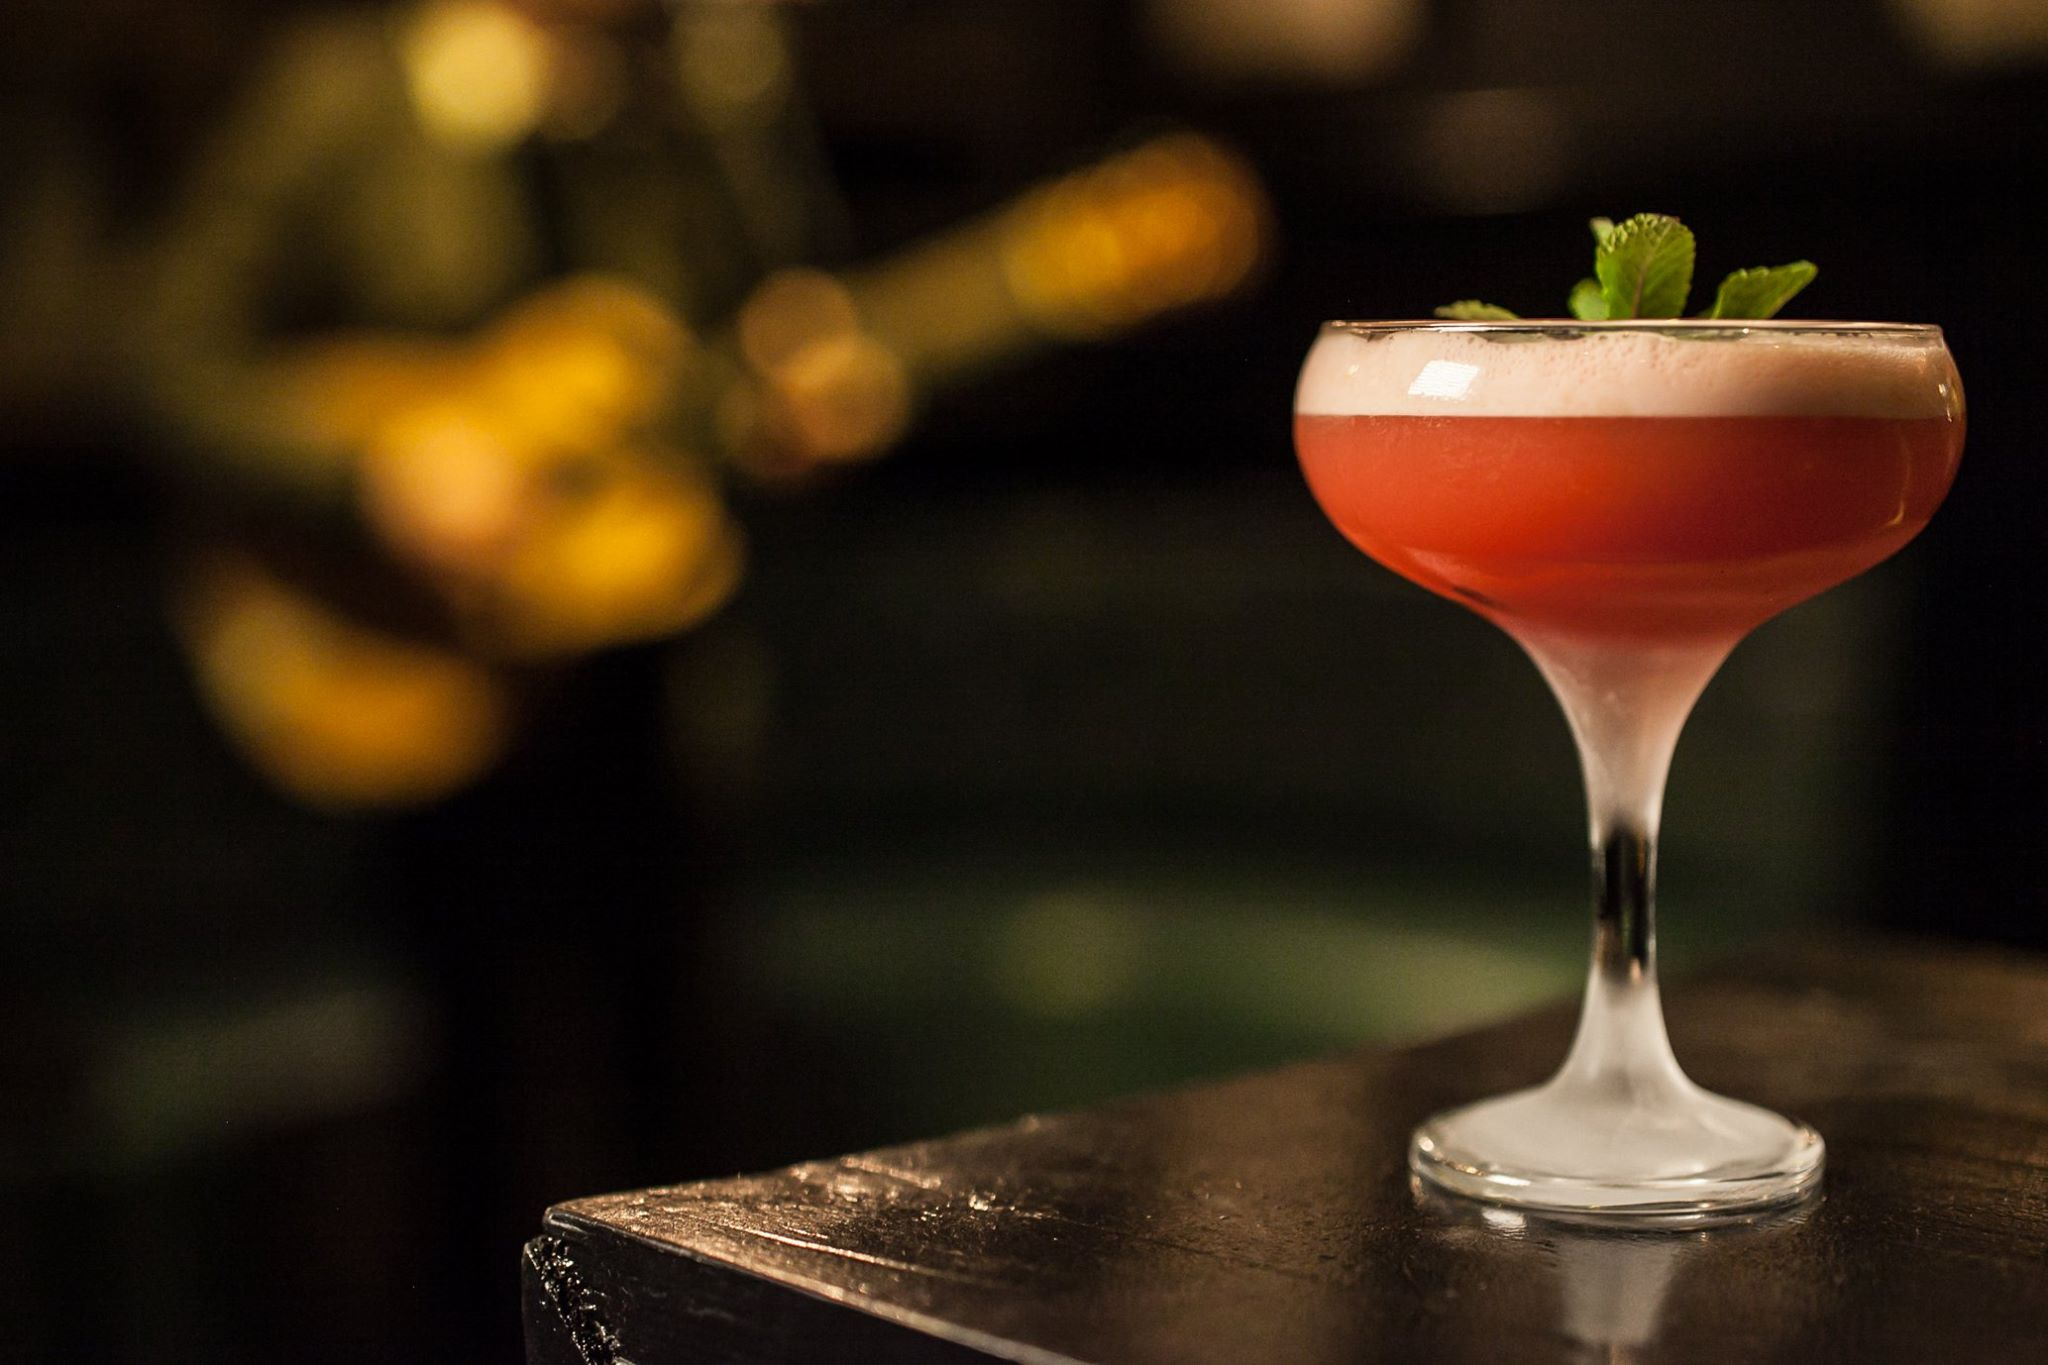 Newcastle's finest cocktail bars, featuring a cocktail in a martini glass from Passing Clouds